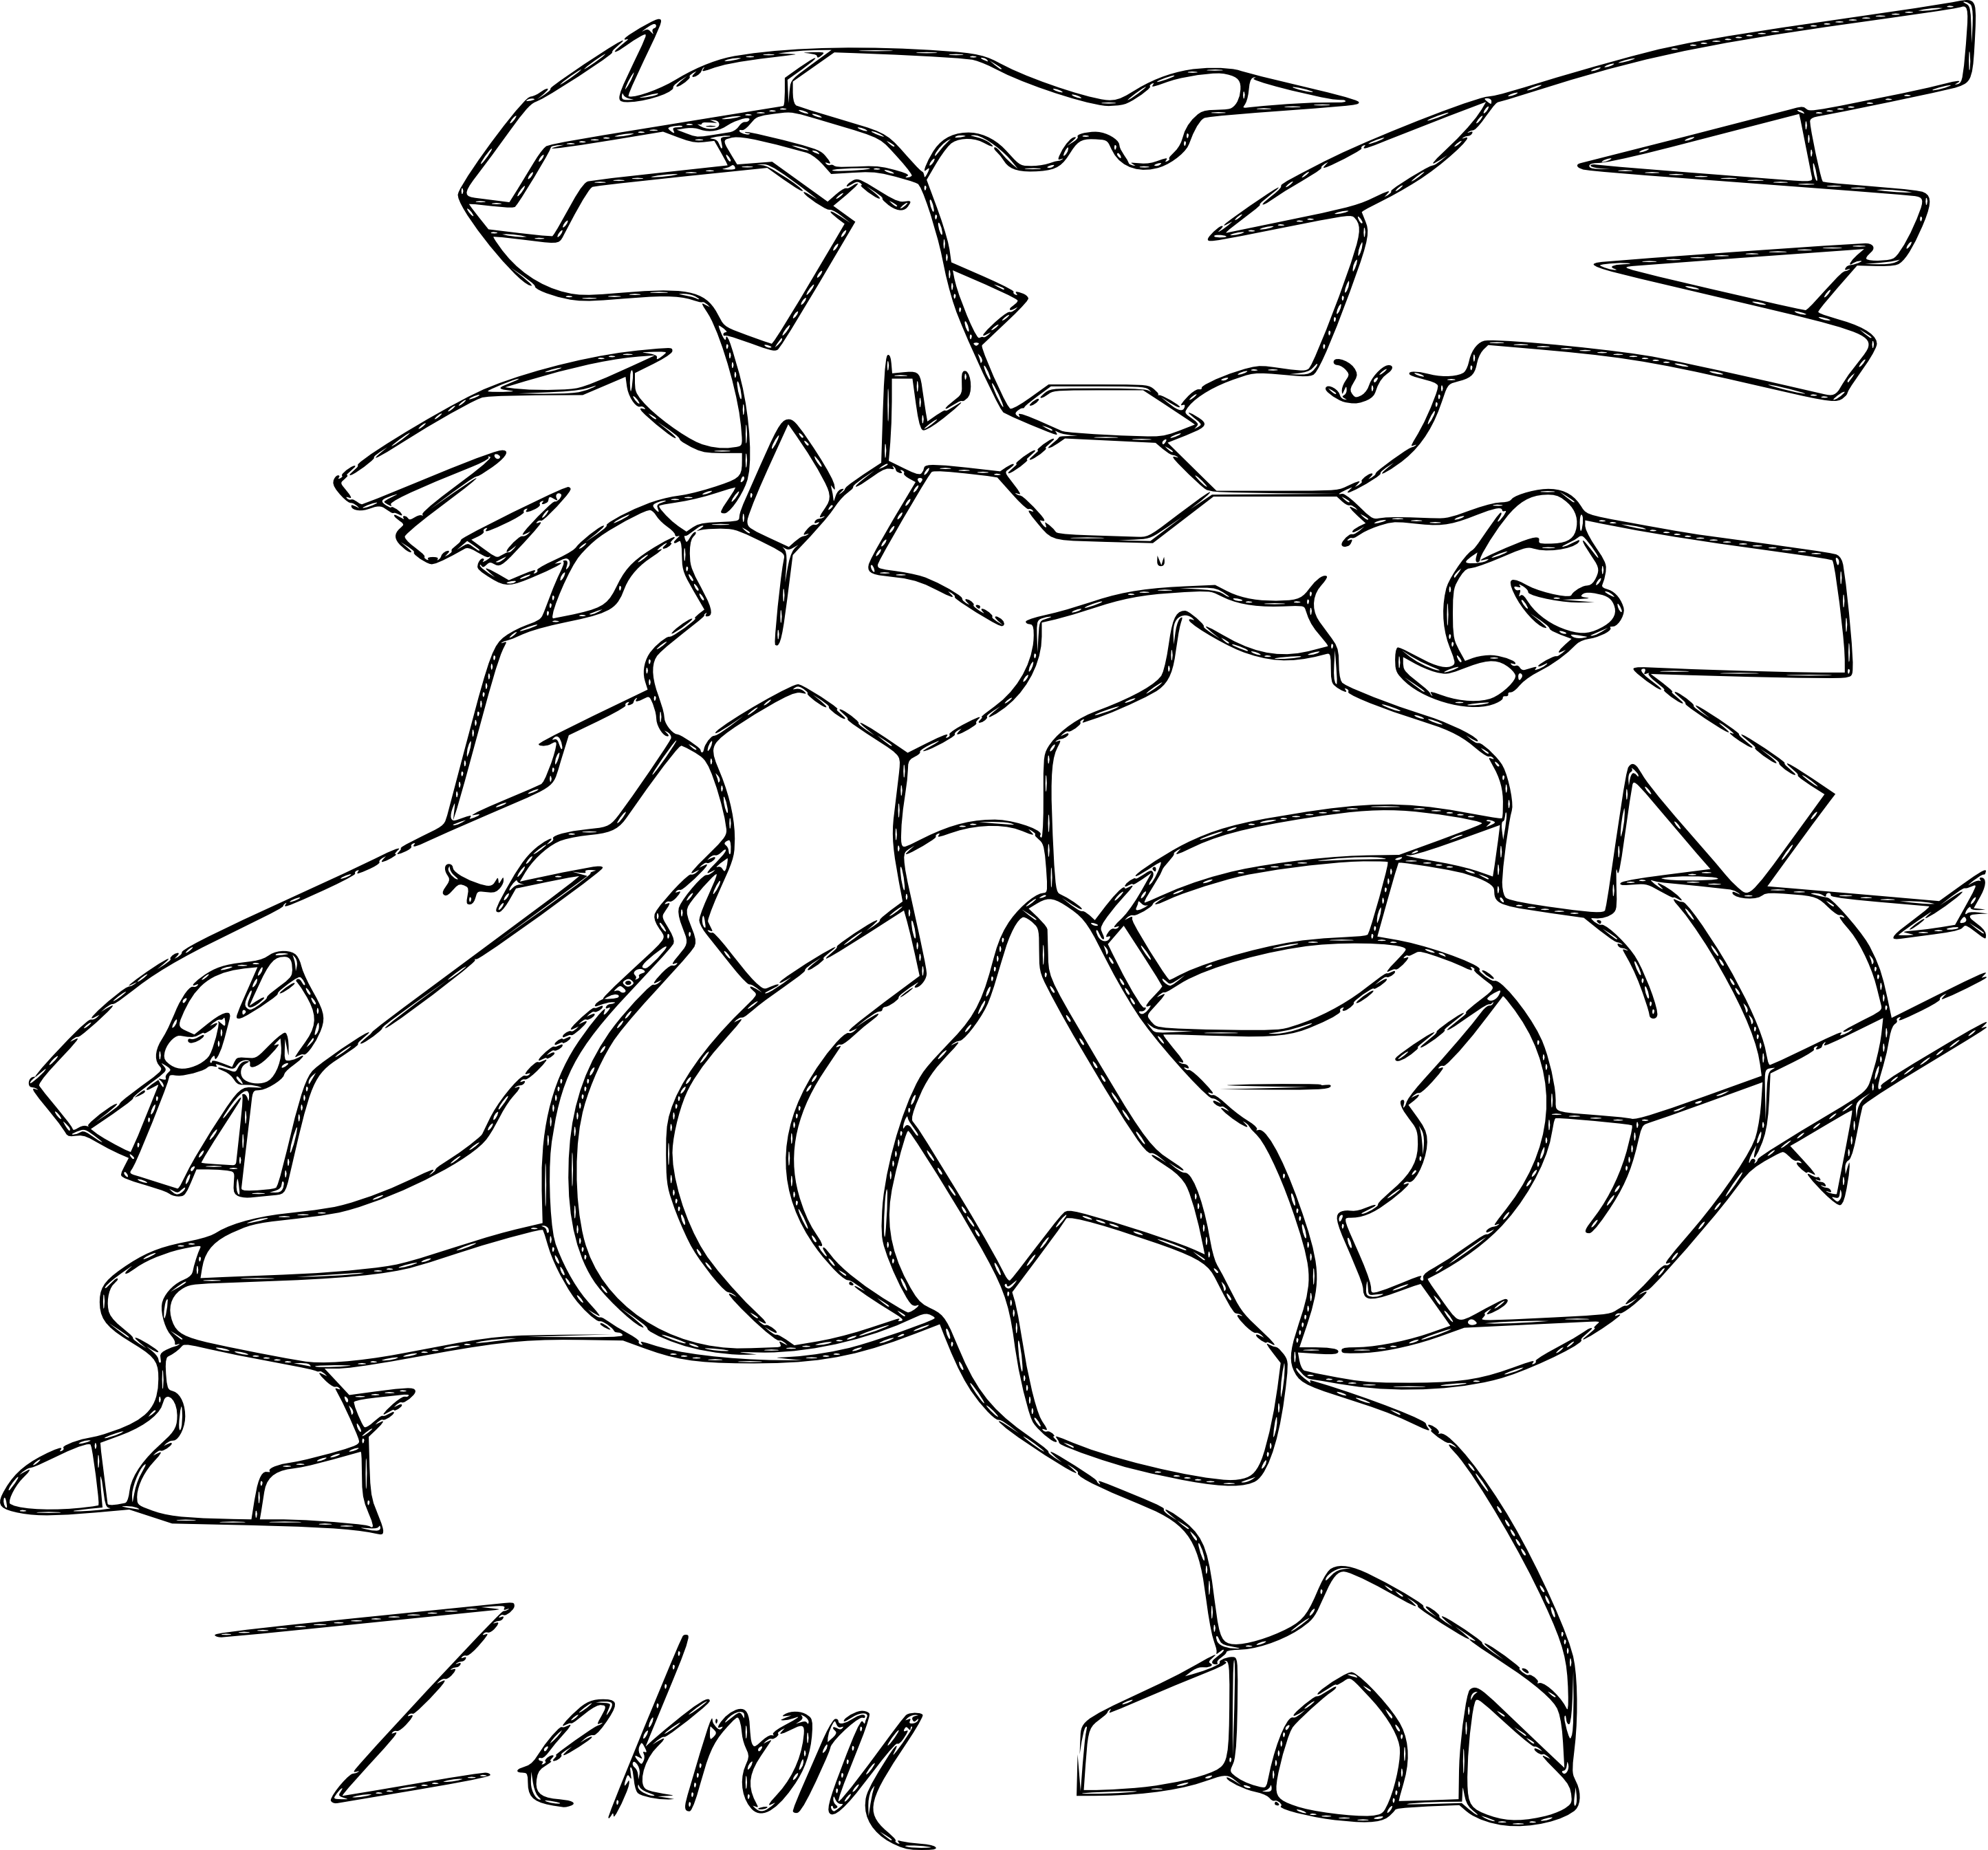 Dessin de Pokemon   imprimer · coloriage de pokemon